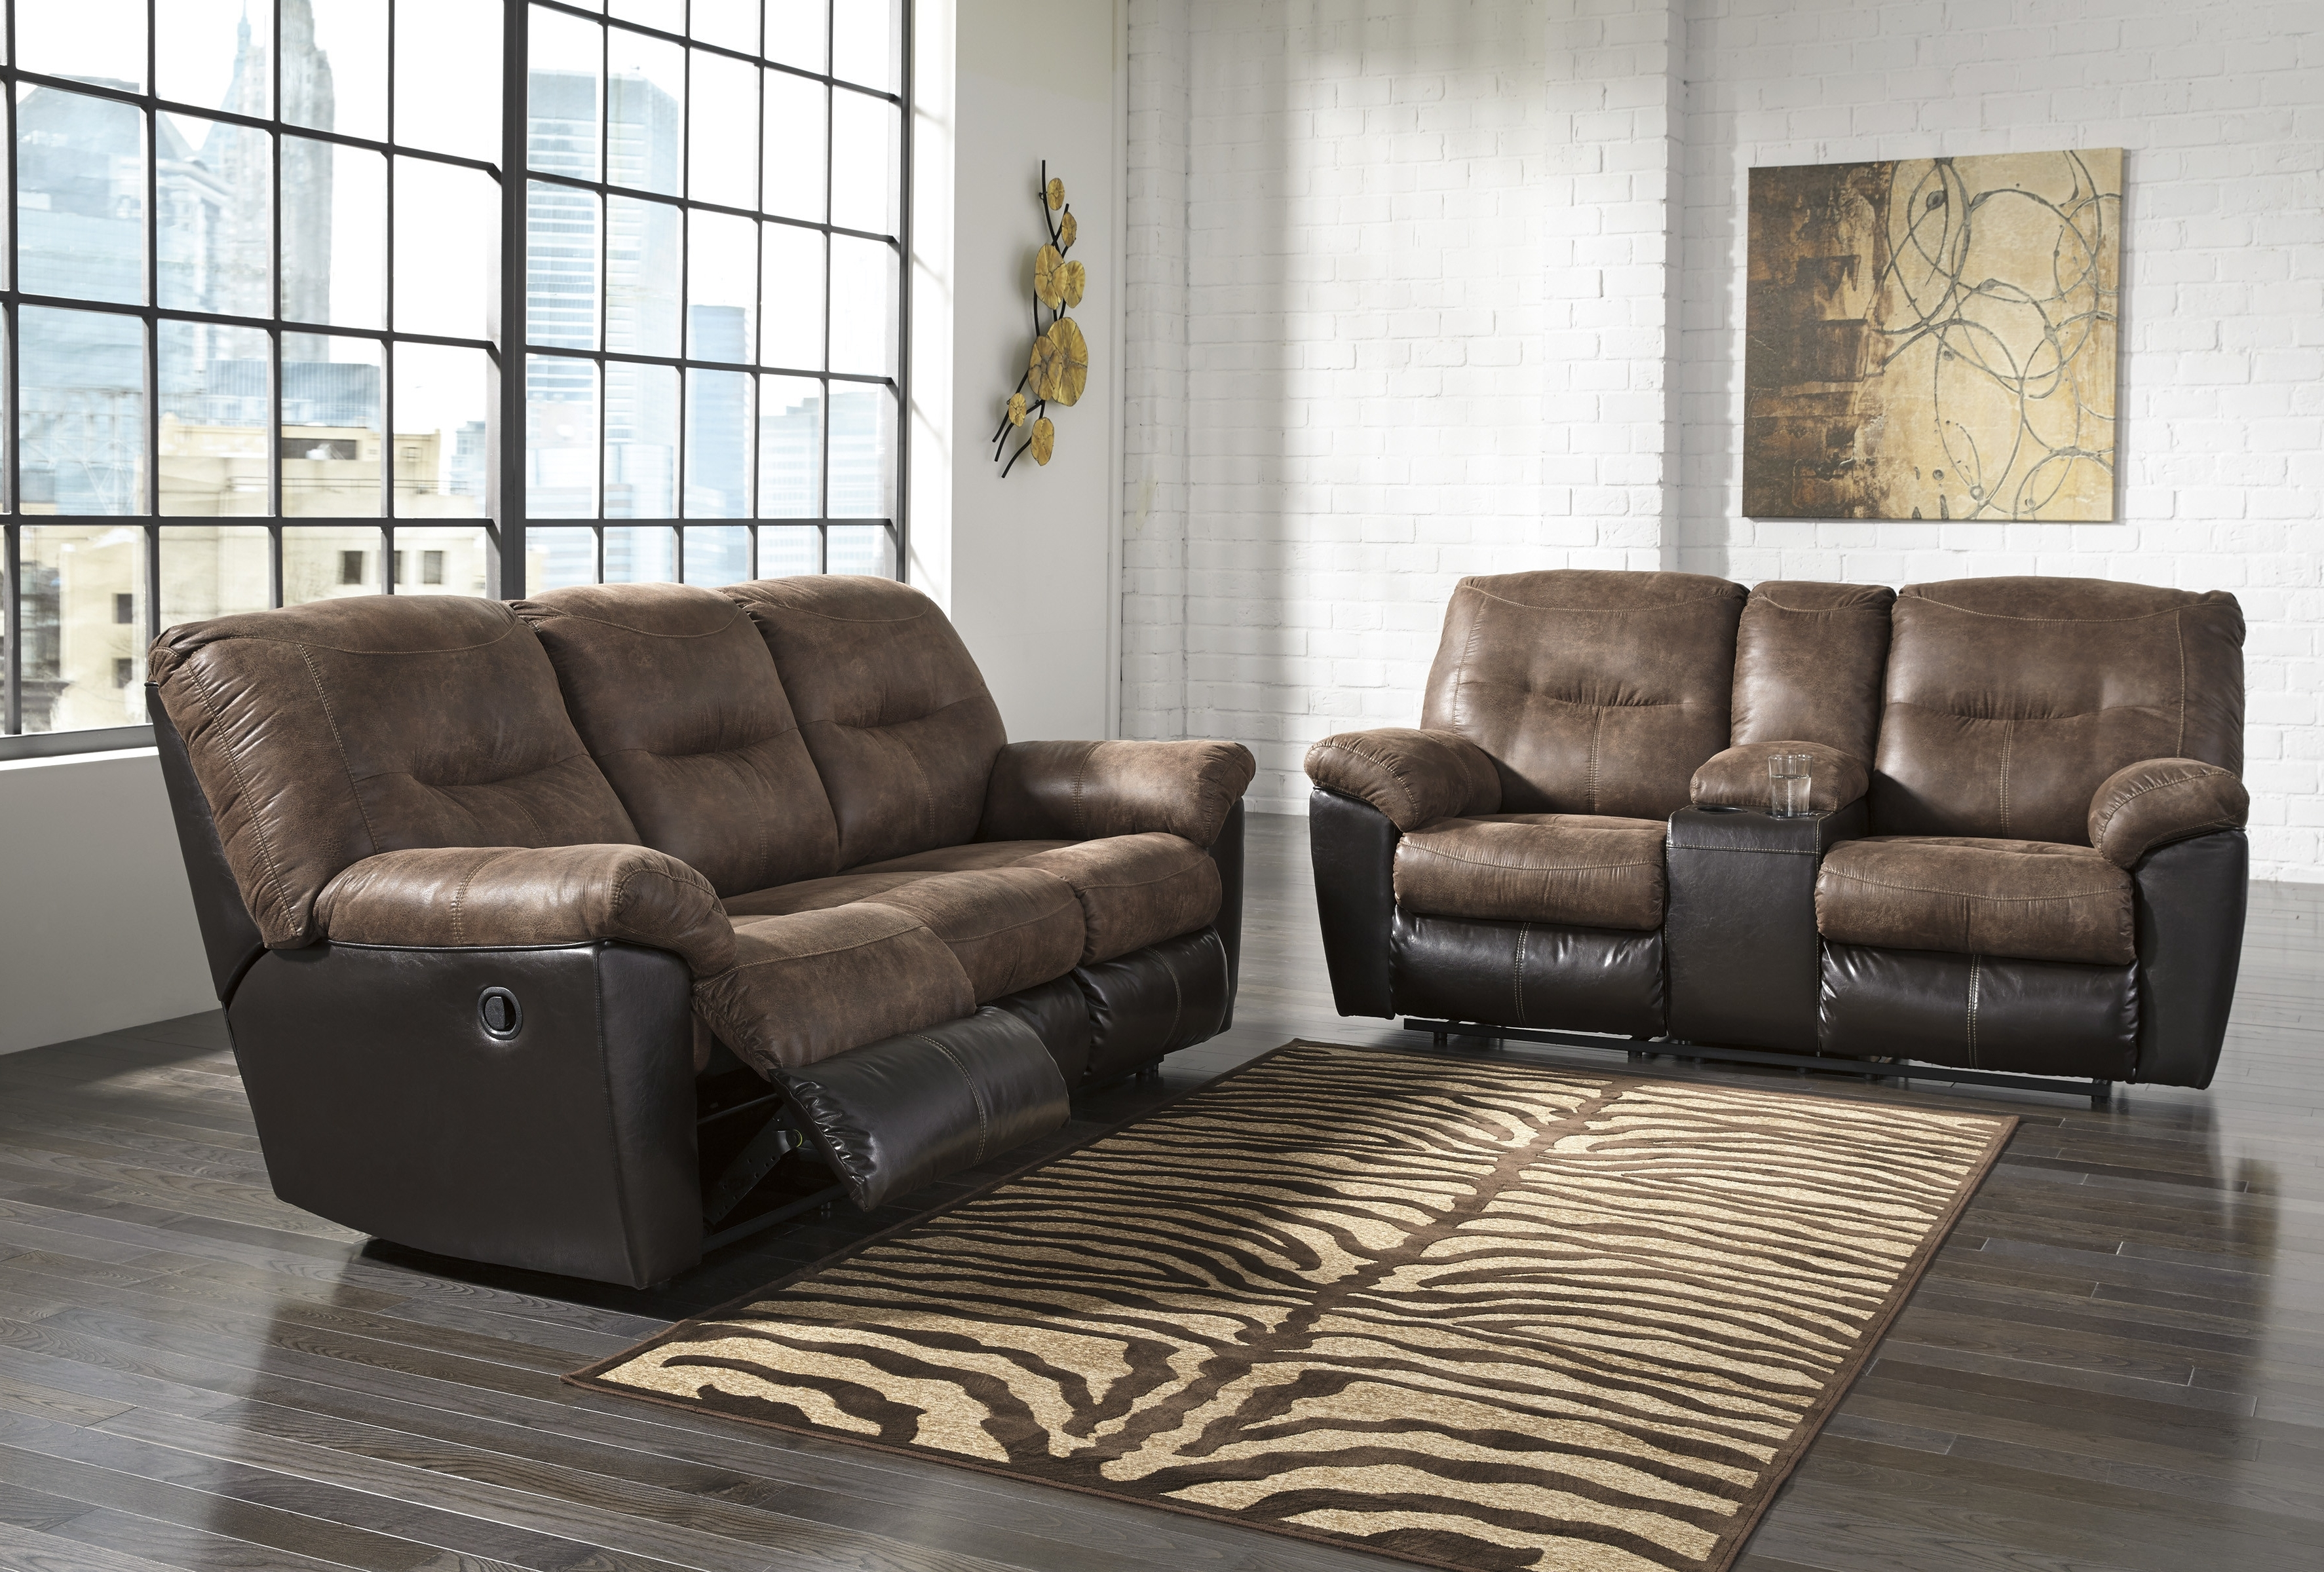 Salt Lake City Sectional Sofas Within Latest Sectional Couches Salt Lake City Slumberland Loveseats Hom (View 3 of 15)